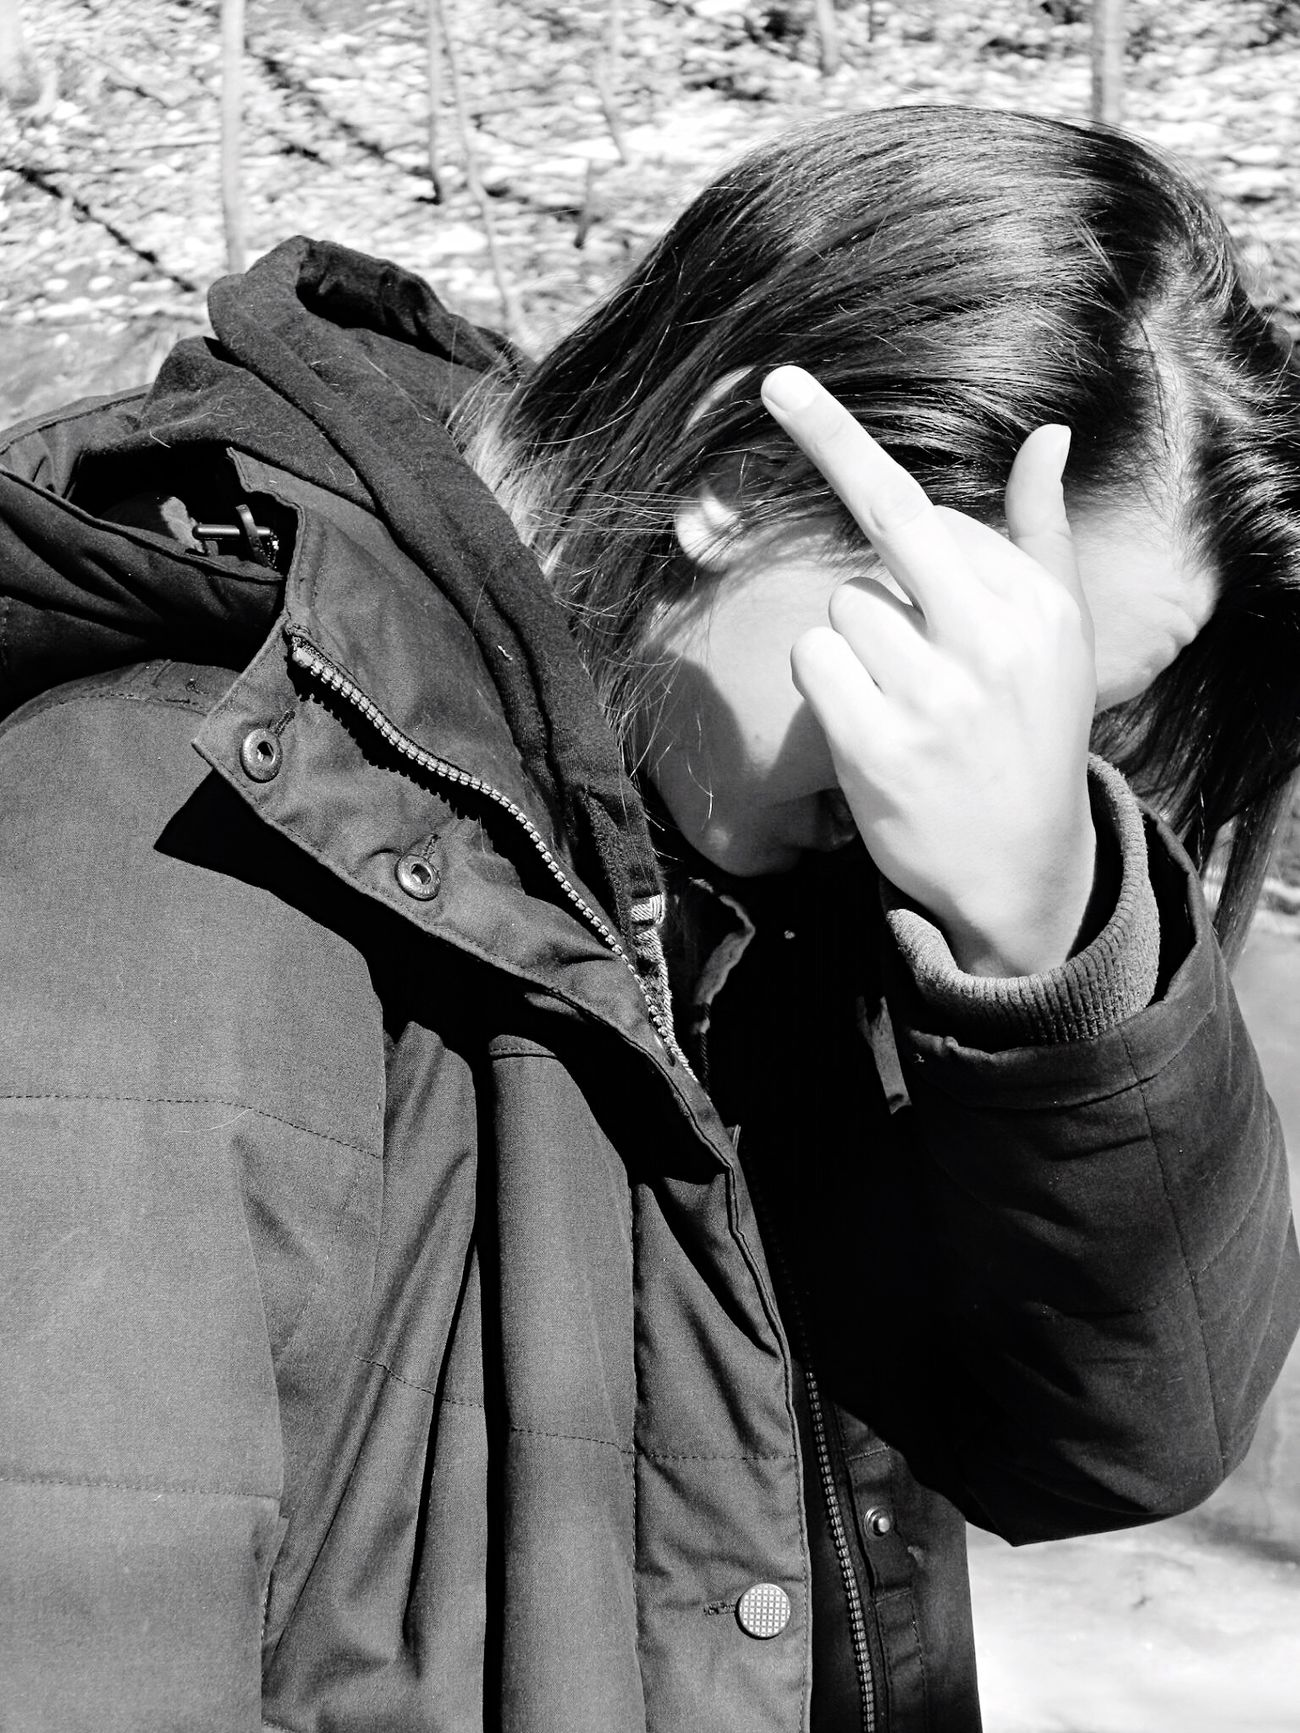 🖕🏻 Love Lesbian Photography Picoftheday Picture Life Gansta Style Girlfriend FuckYou Blackandwhite Blackandwhite Photography